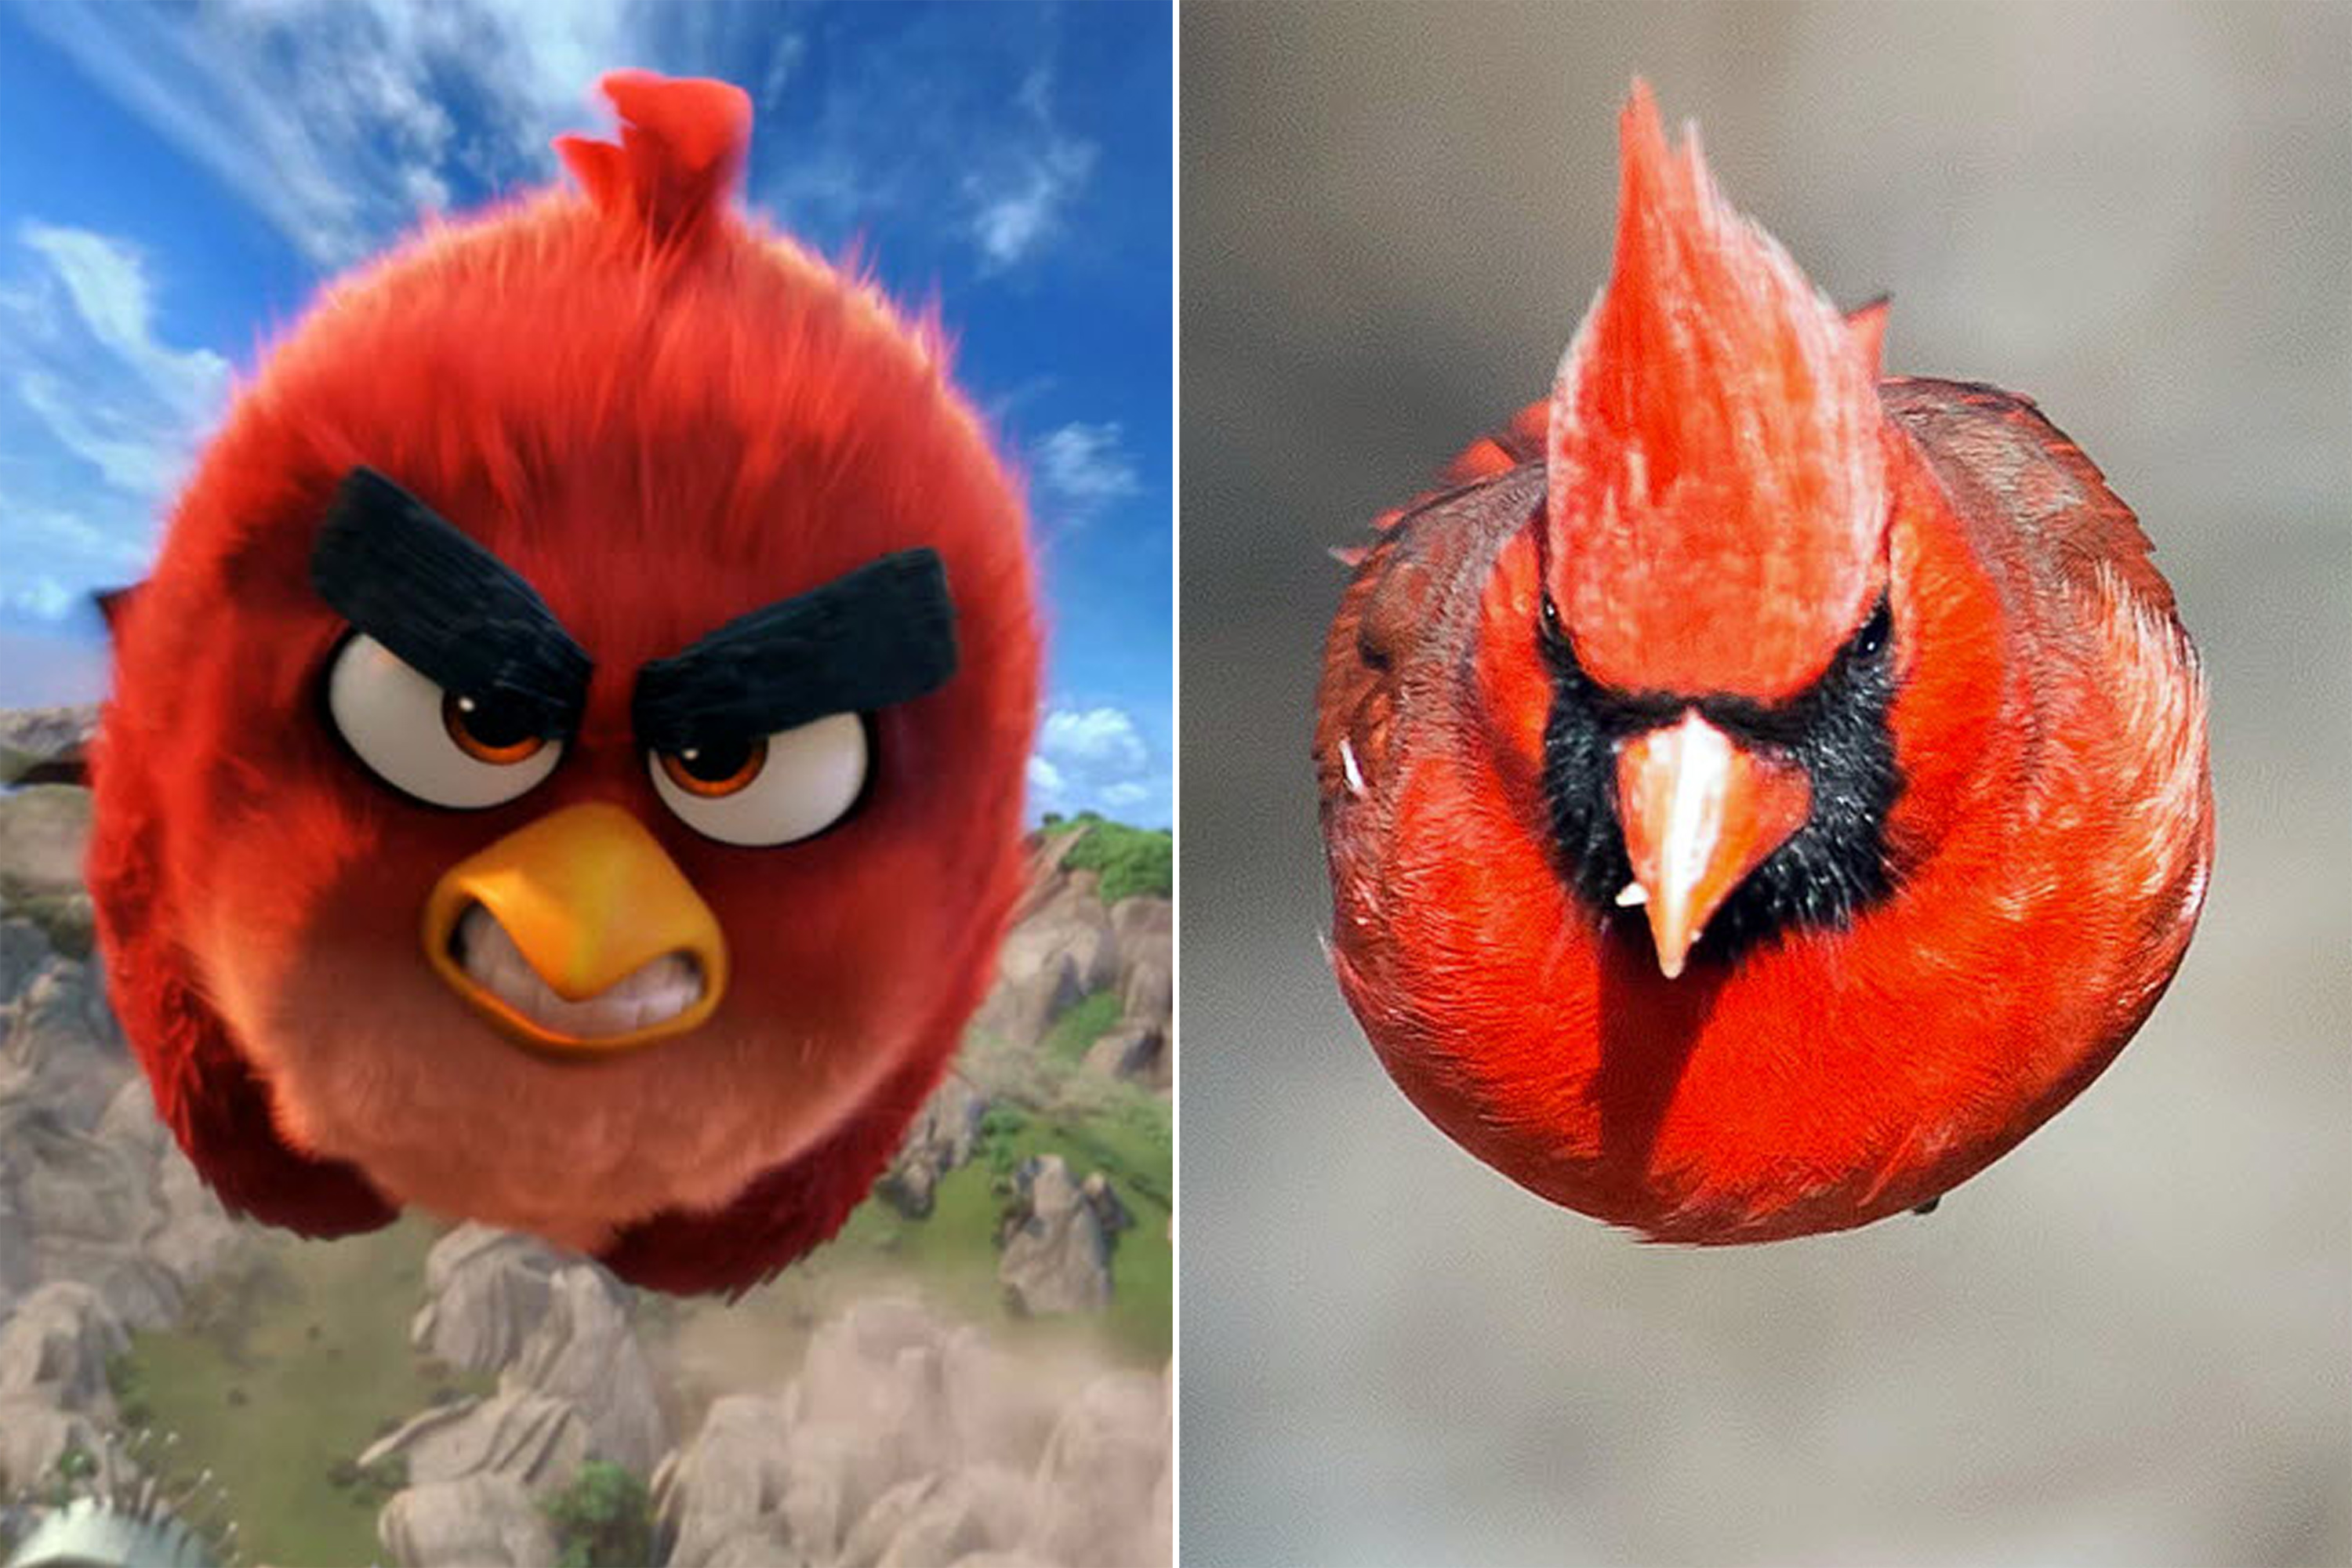 Real Life Angry Bird Is At Large